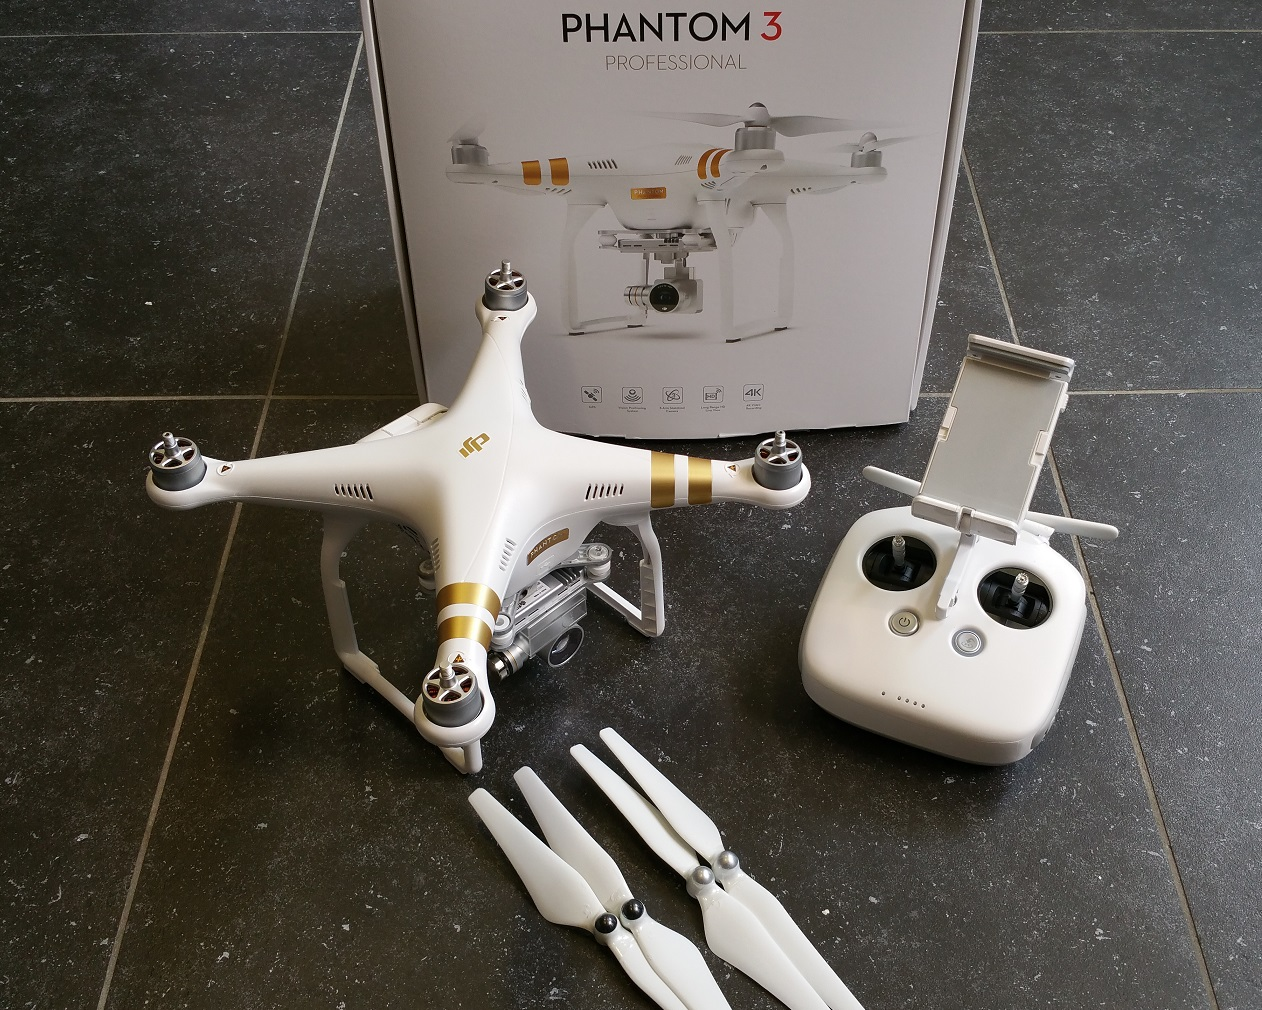 dji phantom 3 professional slechts 4x gevlogen. Black Bedroom Furniture Sets. Home Design Ideas